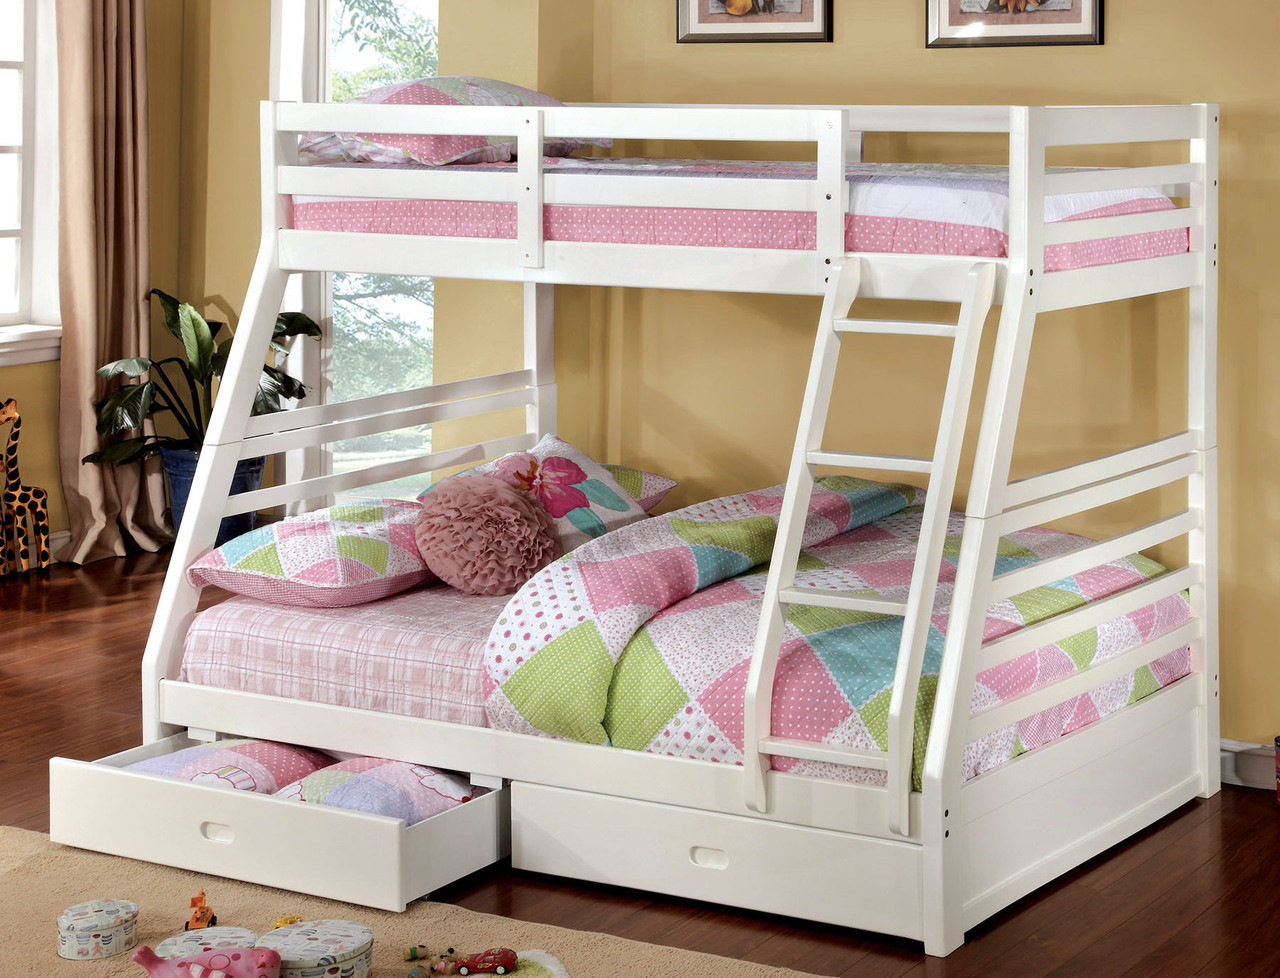 White Wooden Bunk Beds Makaio White Wood Twin Over Full Bunk Bed With Drawers For